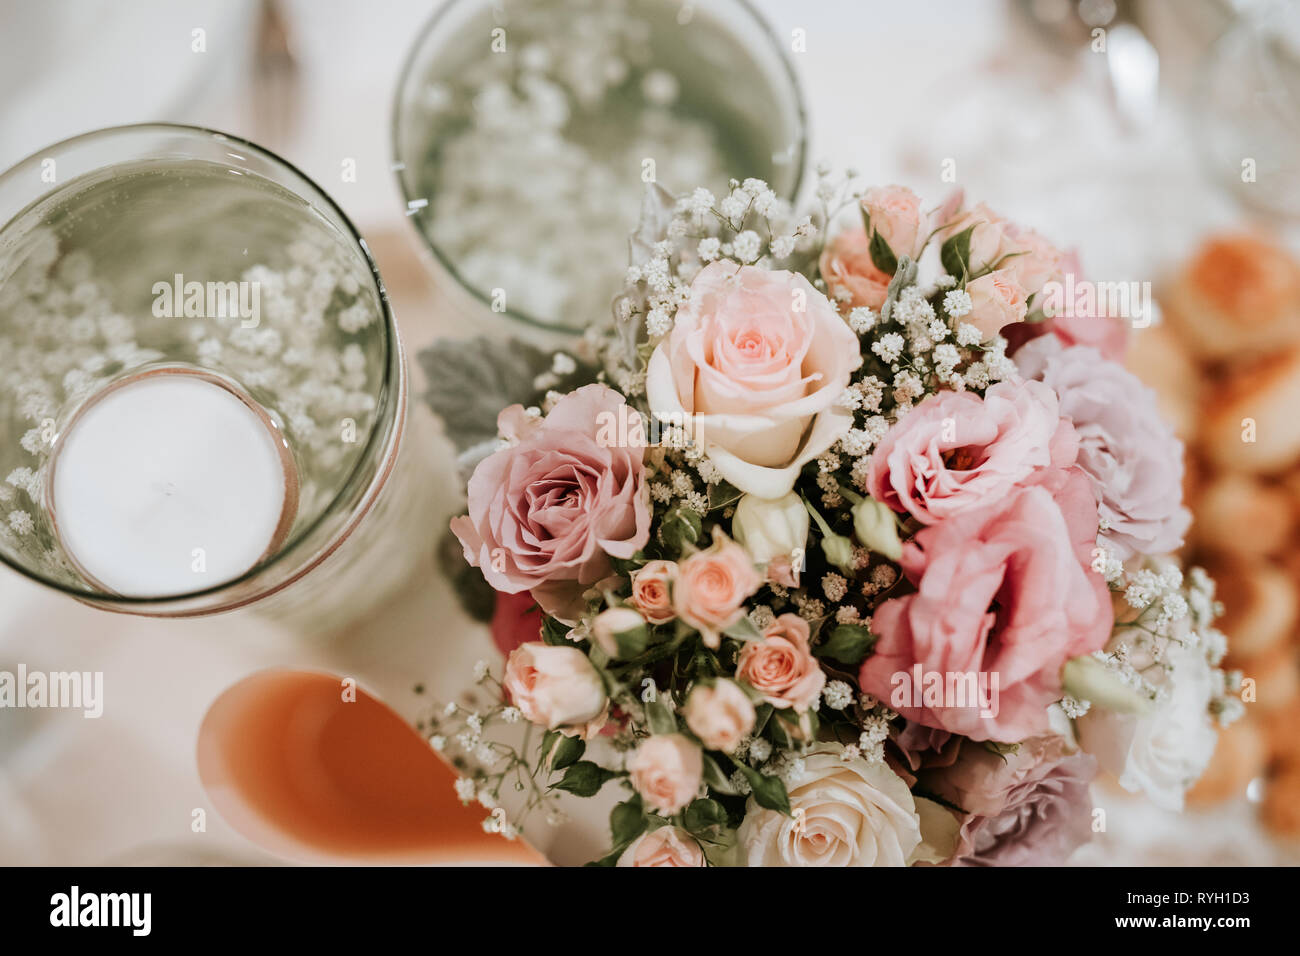 Colorful Flower Wedding Center Piece Decoration With Pink And White Roses Stock Photo Alamy